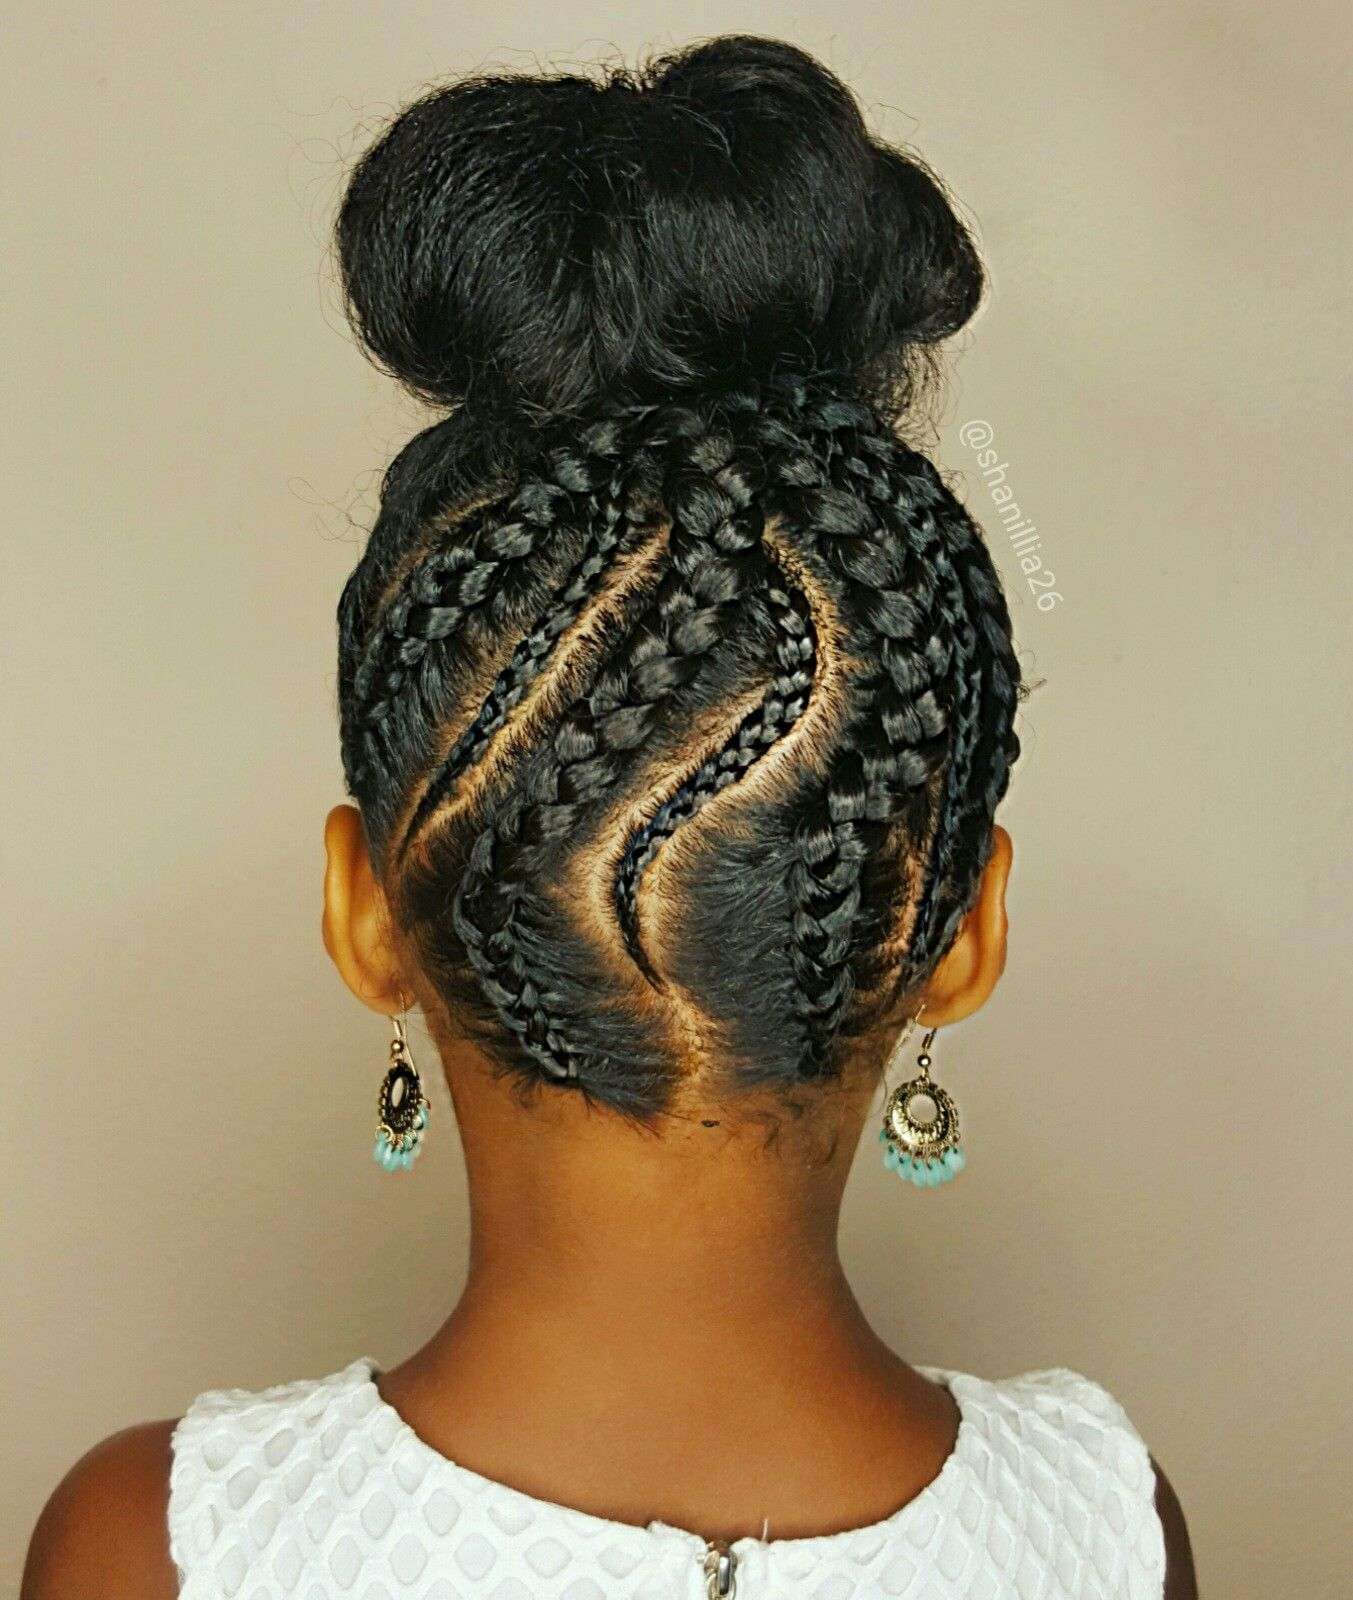 Braided Updo Natural Hairstyles For Kids Natural Hairstyles For Kids Natural Hair Styles Kids Hairstyles